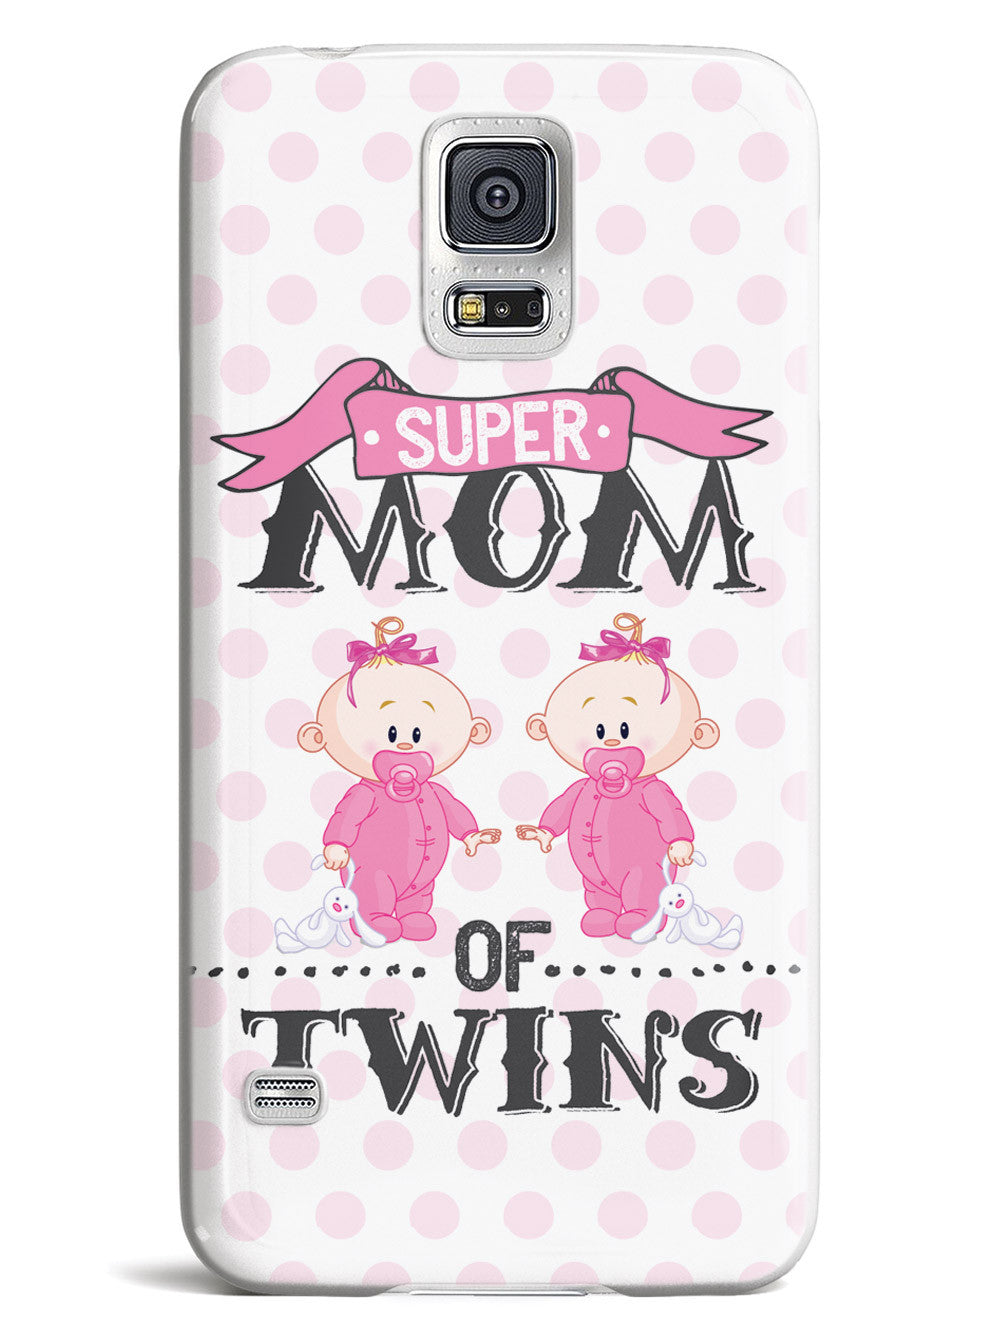 Super Mom of Twins - Girls Case